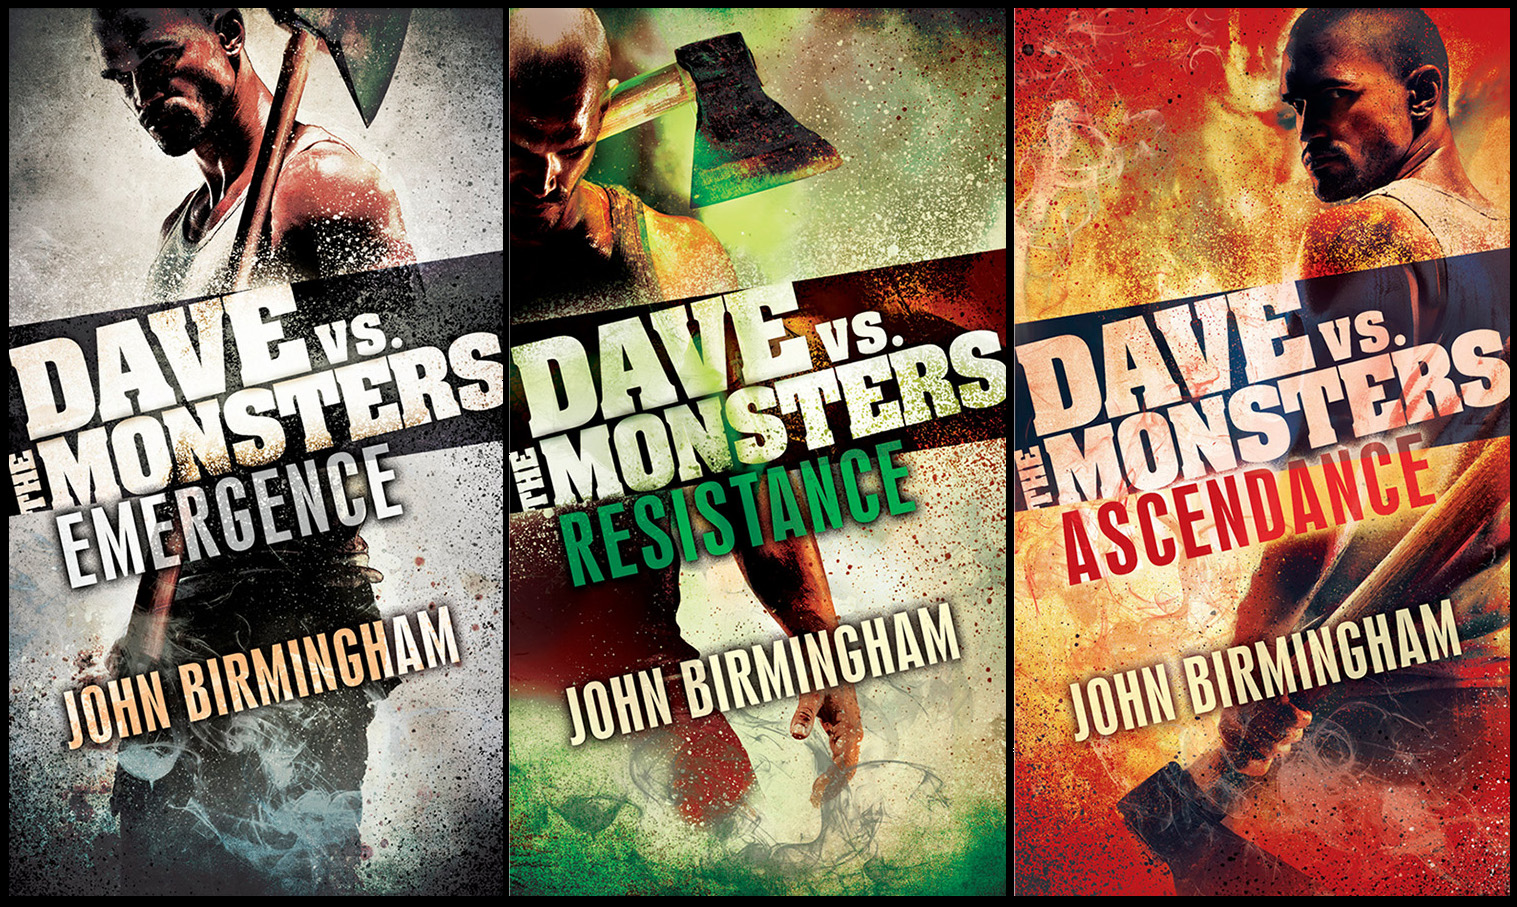 Dave Vs Monsters